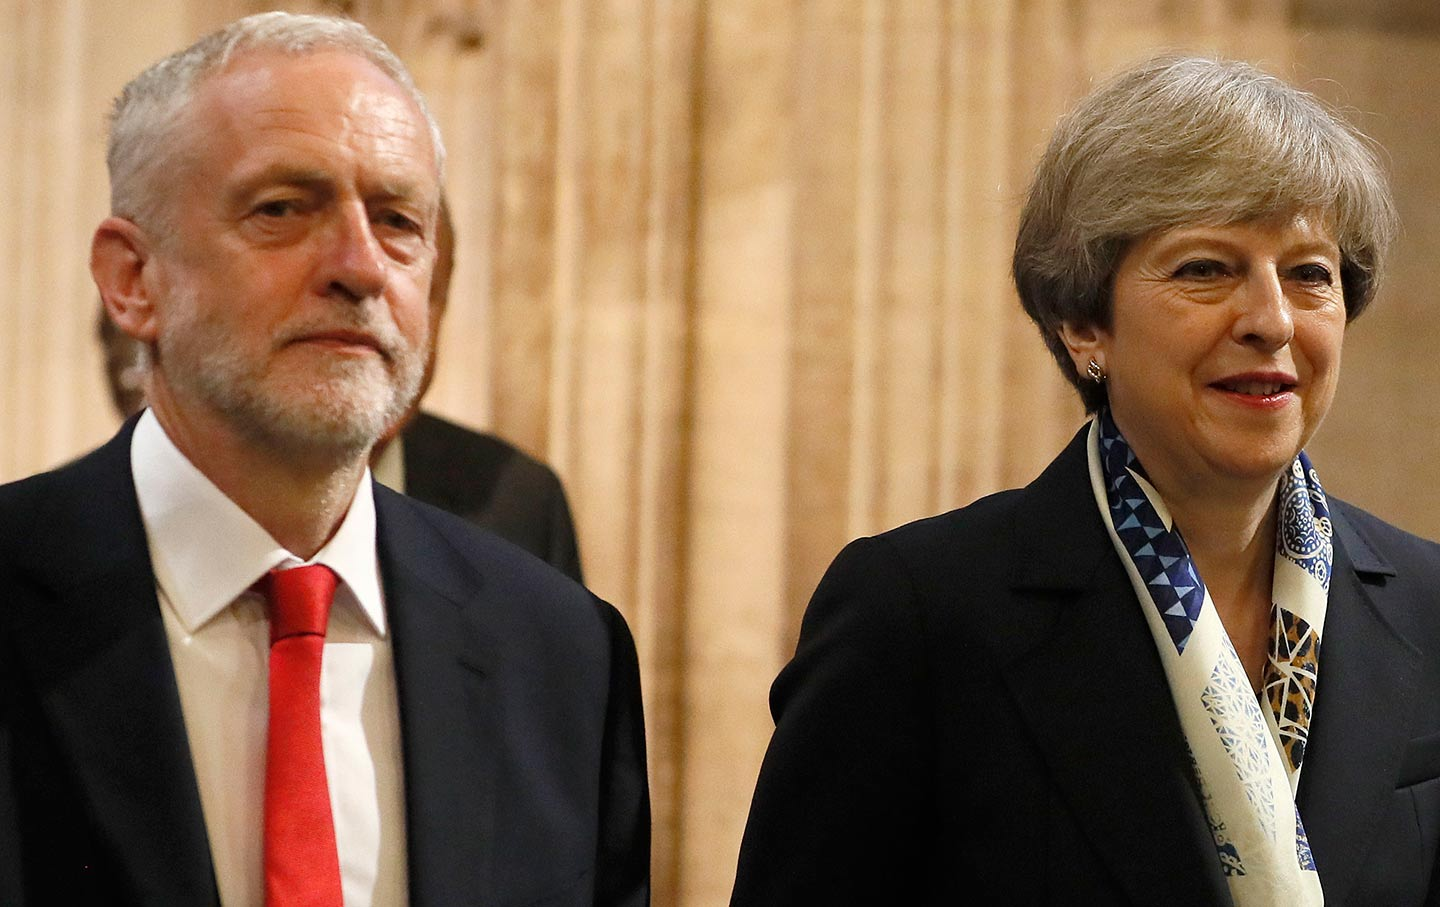 UK Prime Minister Theresa May and opposition leader Jeremy Corbyn, June 21, 2017. (Press Association via AP Images / Kristy Wigglesworth)